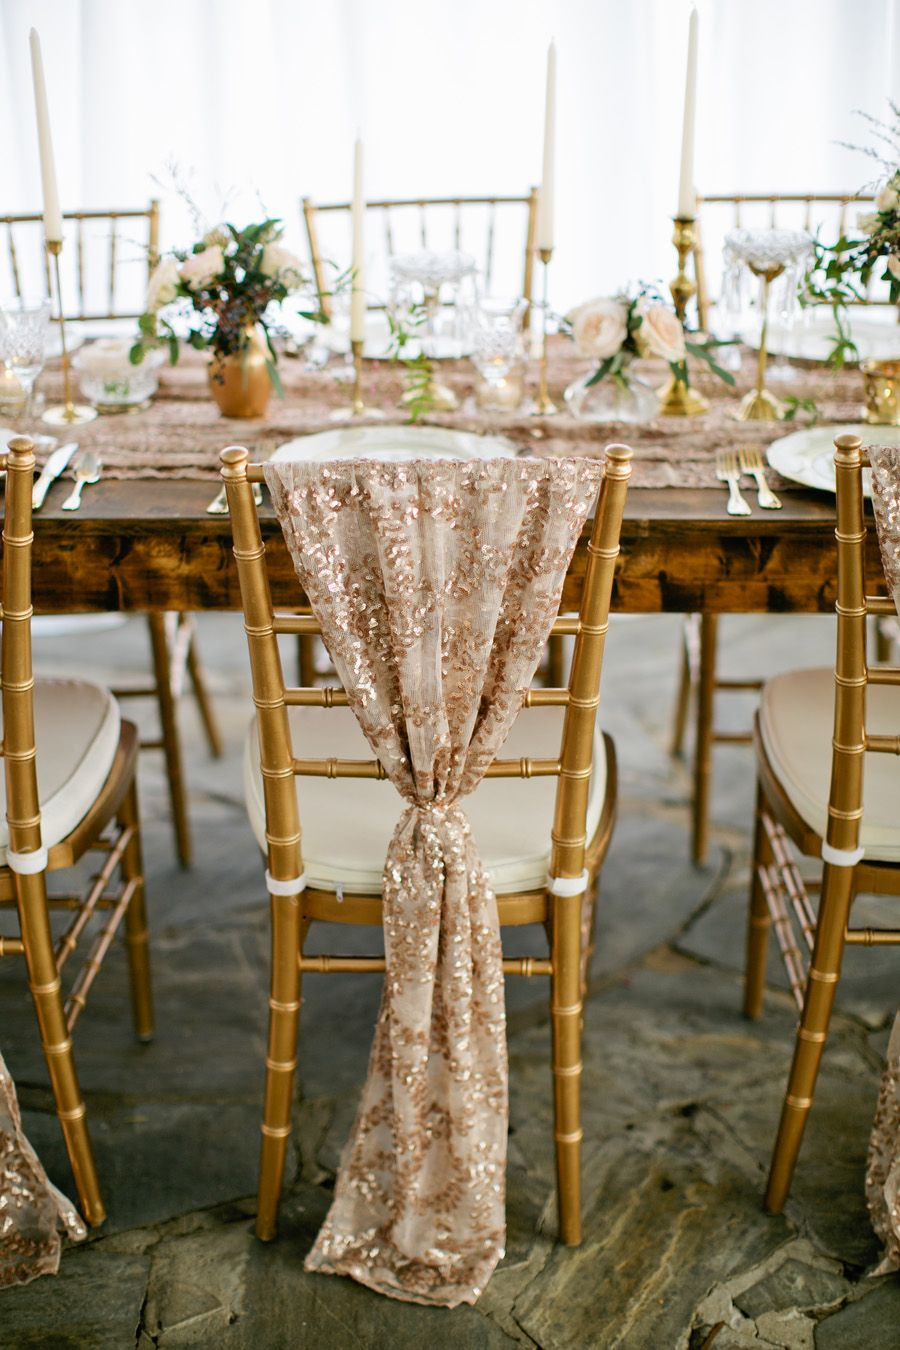 Wedding Chair Cover Hire Kings Lynn Bar Chairs In Rose Gold Ideas Pinterest Decor Cedarwood Weddings Photography By Http Www